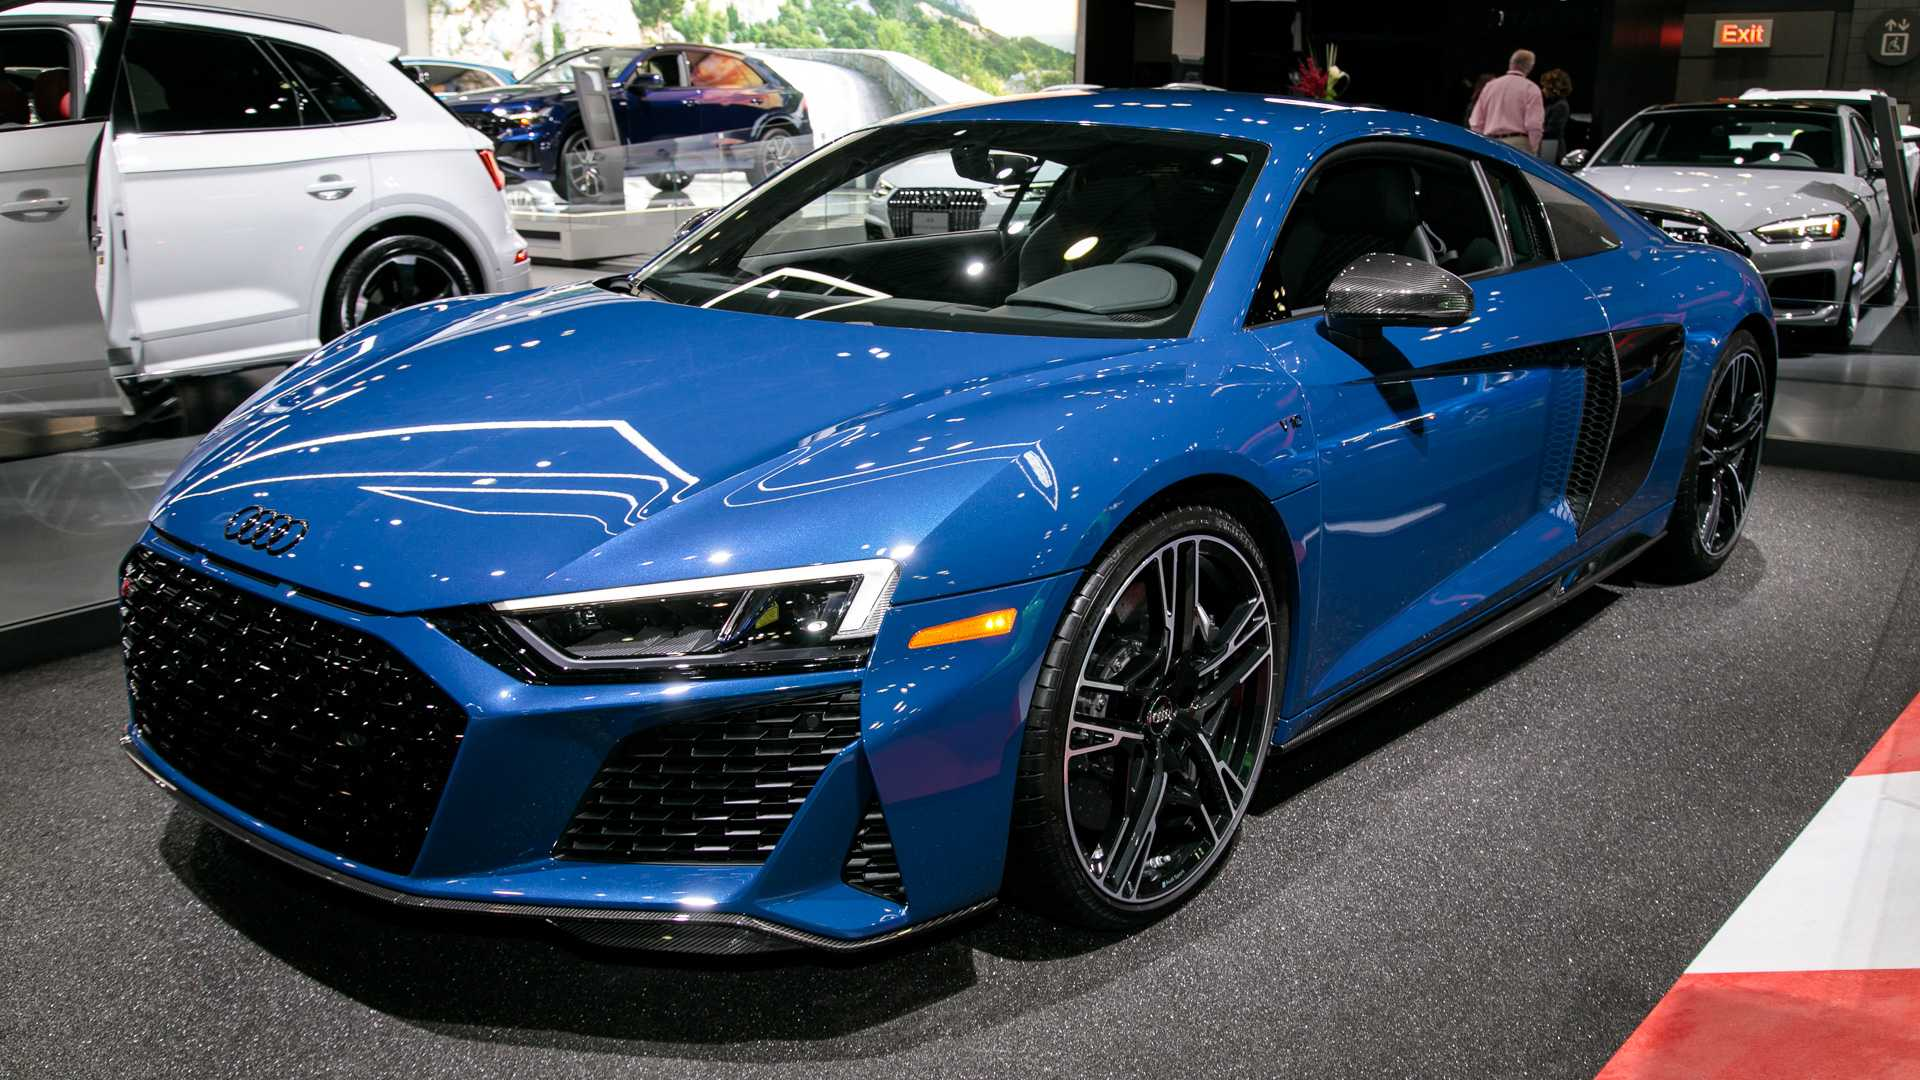 37 The Best 2020 Audi R8 For Sale Model